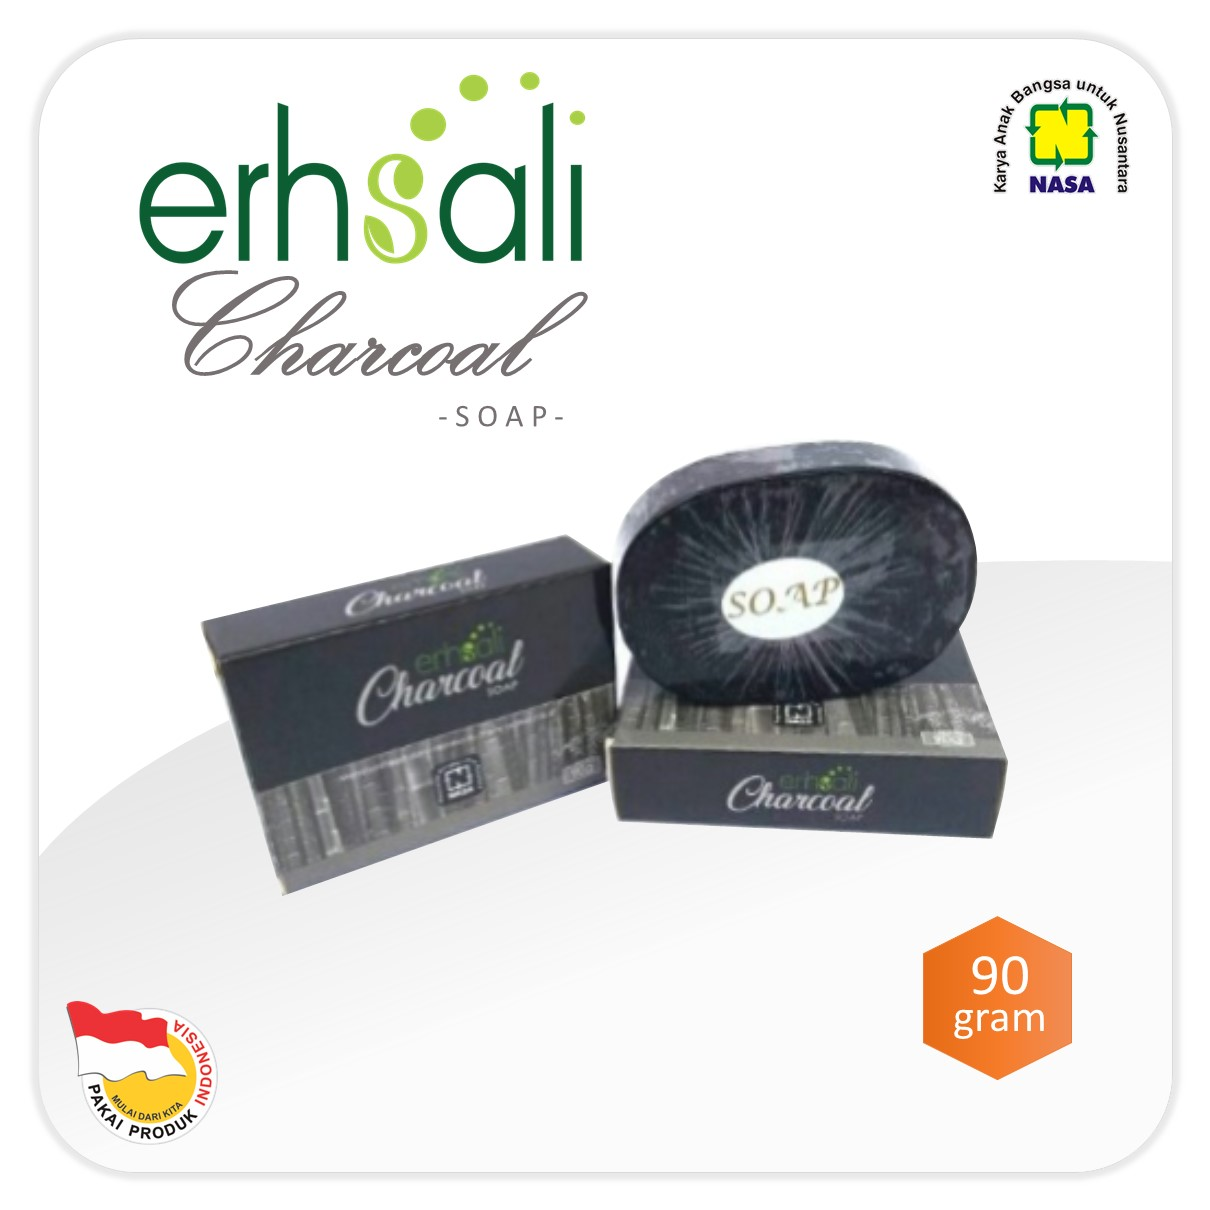 ERHSALI Charcoal Soap NASA